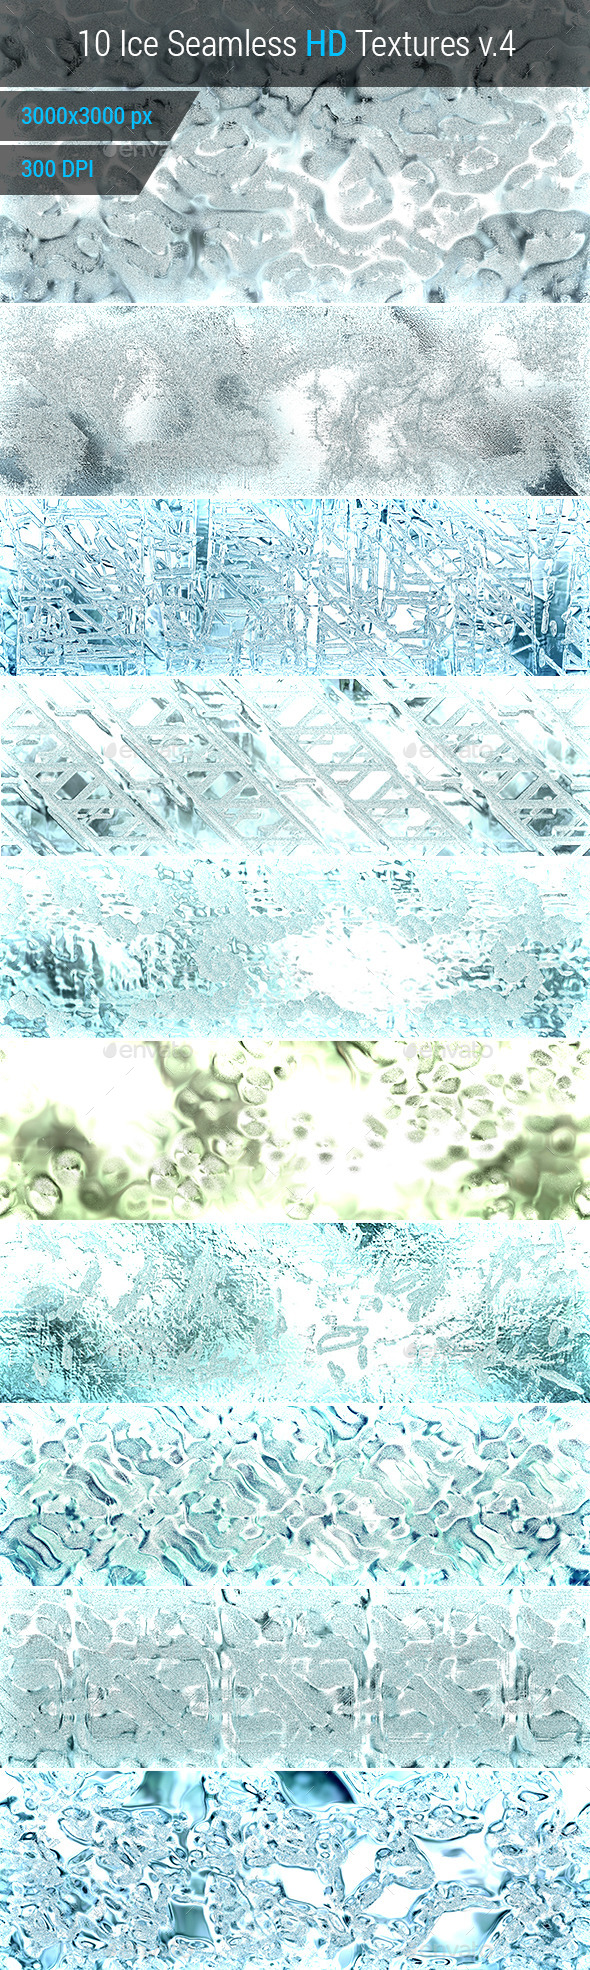 GraphicRiver Ice Seamless and Tileable Background Texture v.4 10193890